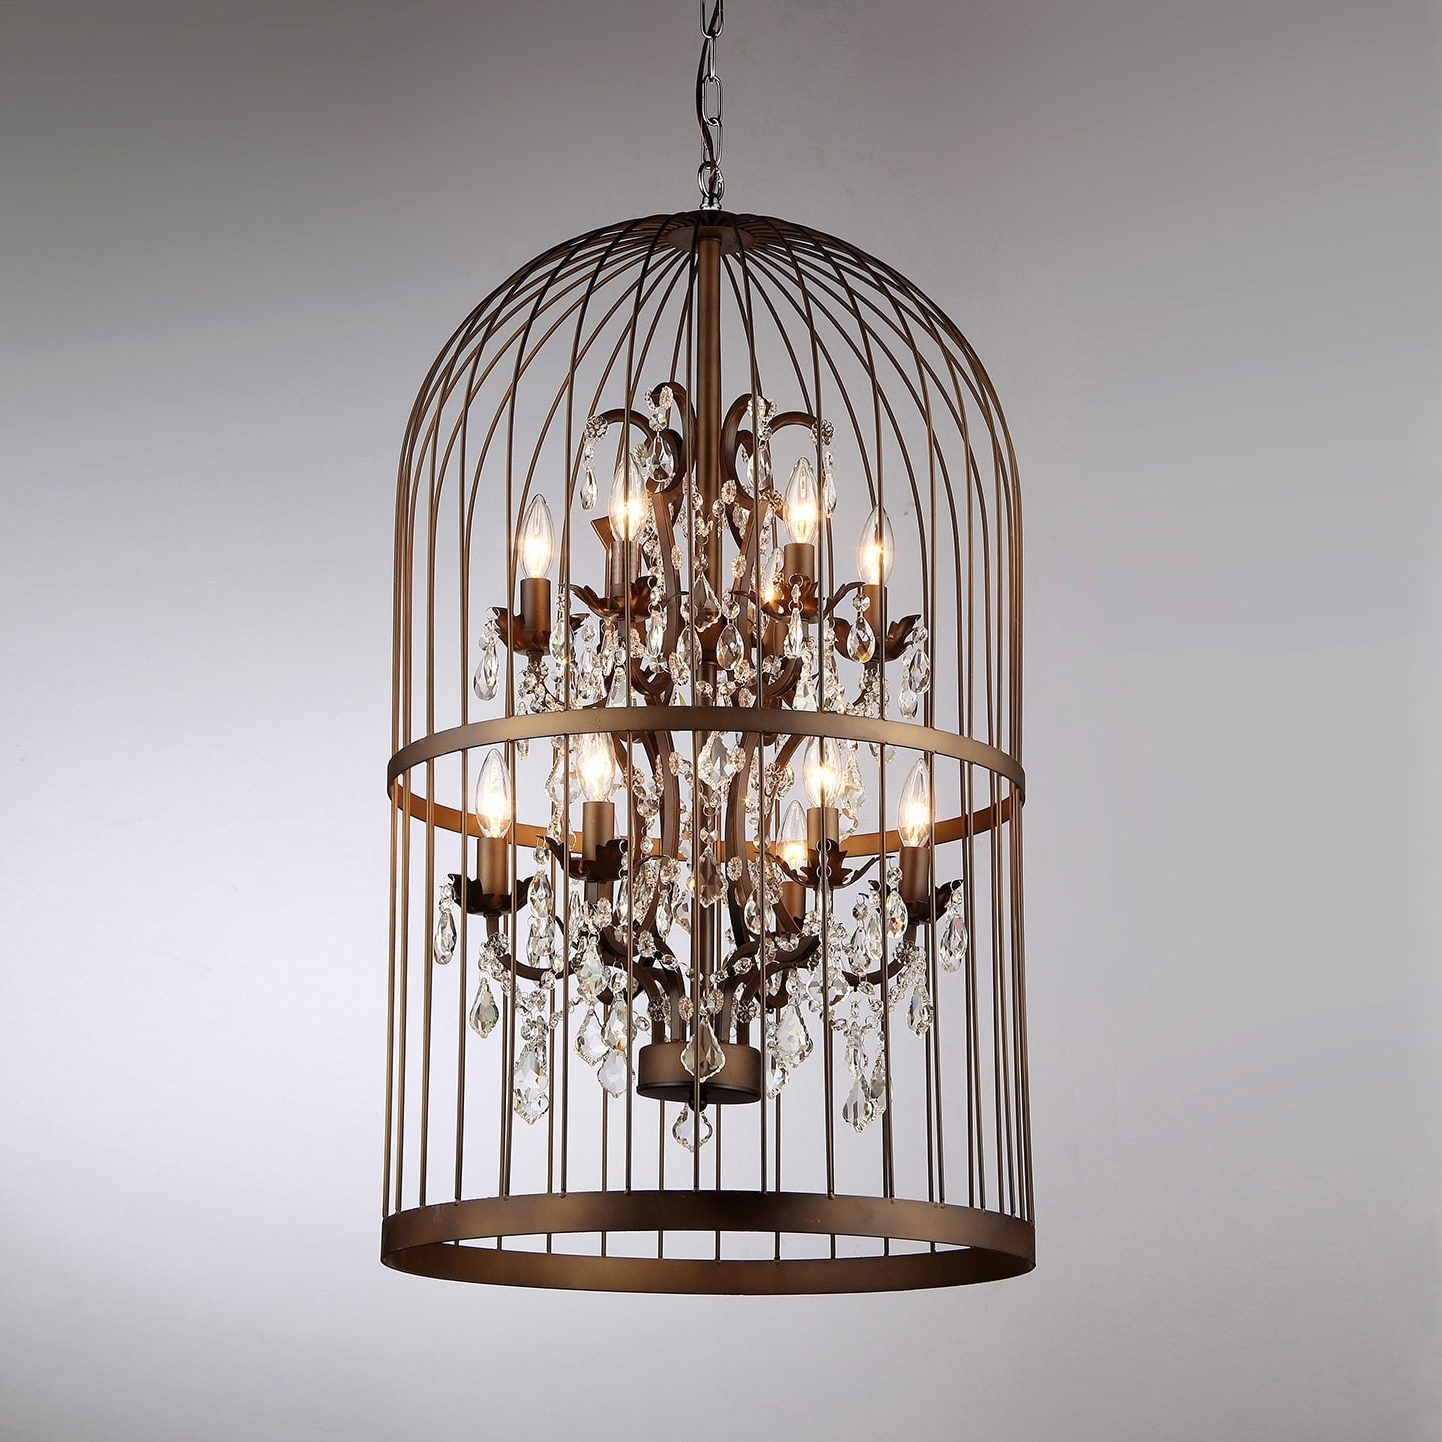 Widely Used Rinee Cage Chandelier – Free Shipping Today – Overstock – 16585997 Within Cage Chandeliers (View 7 of 15)